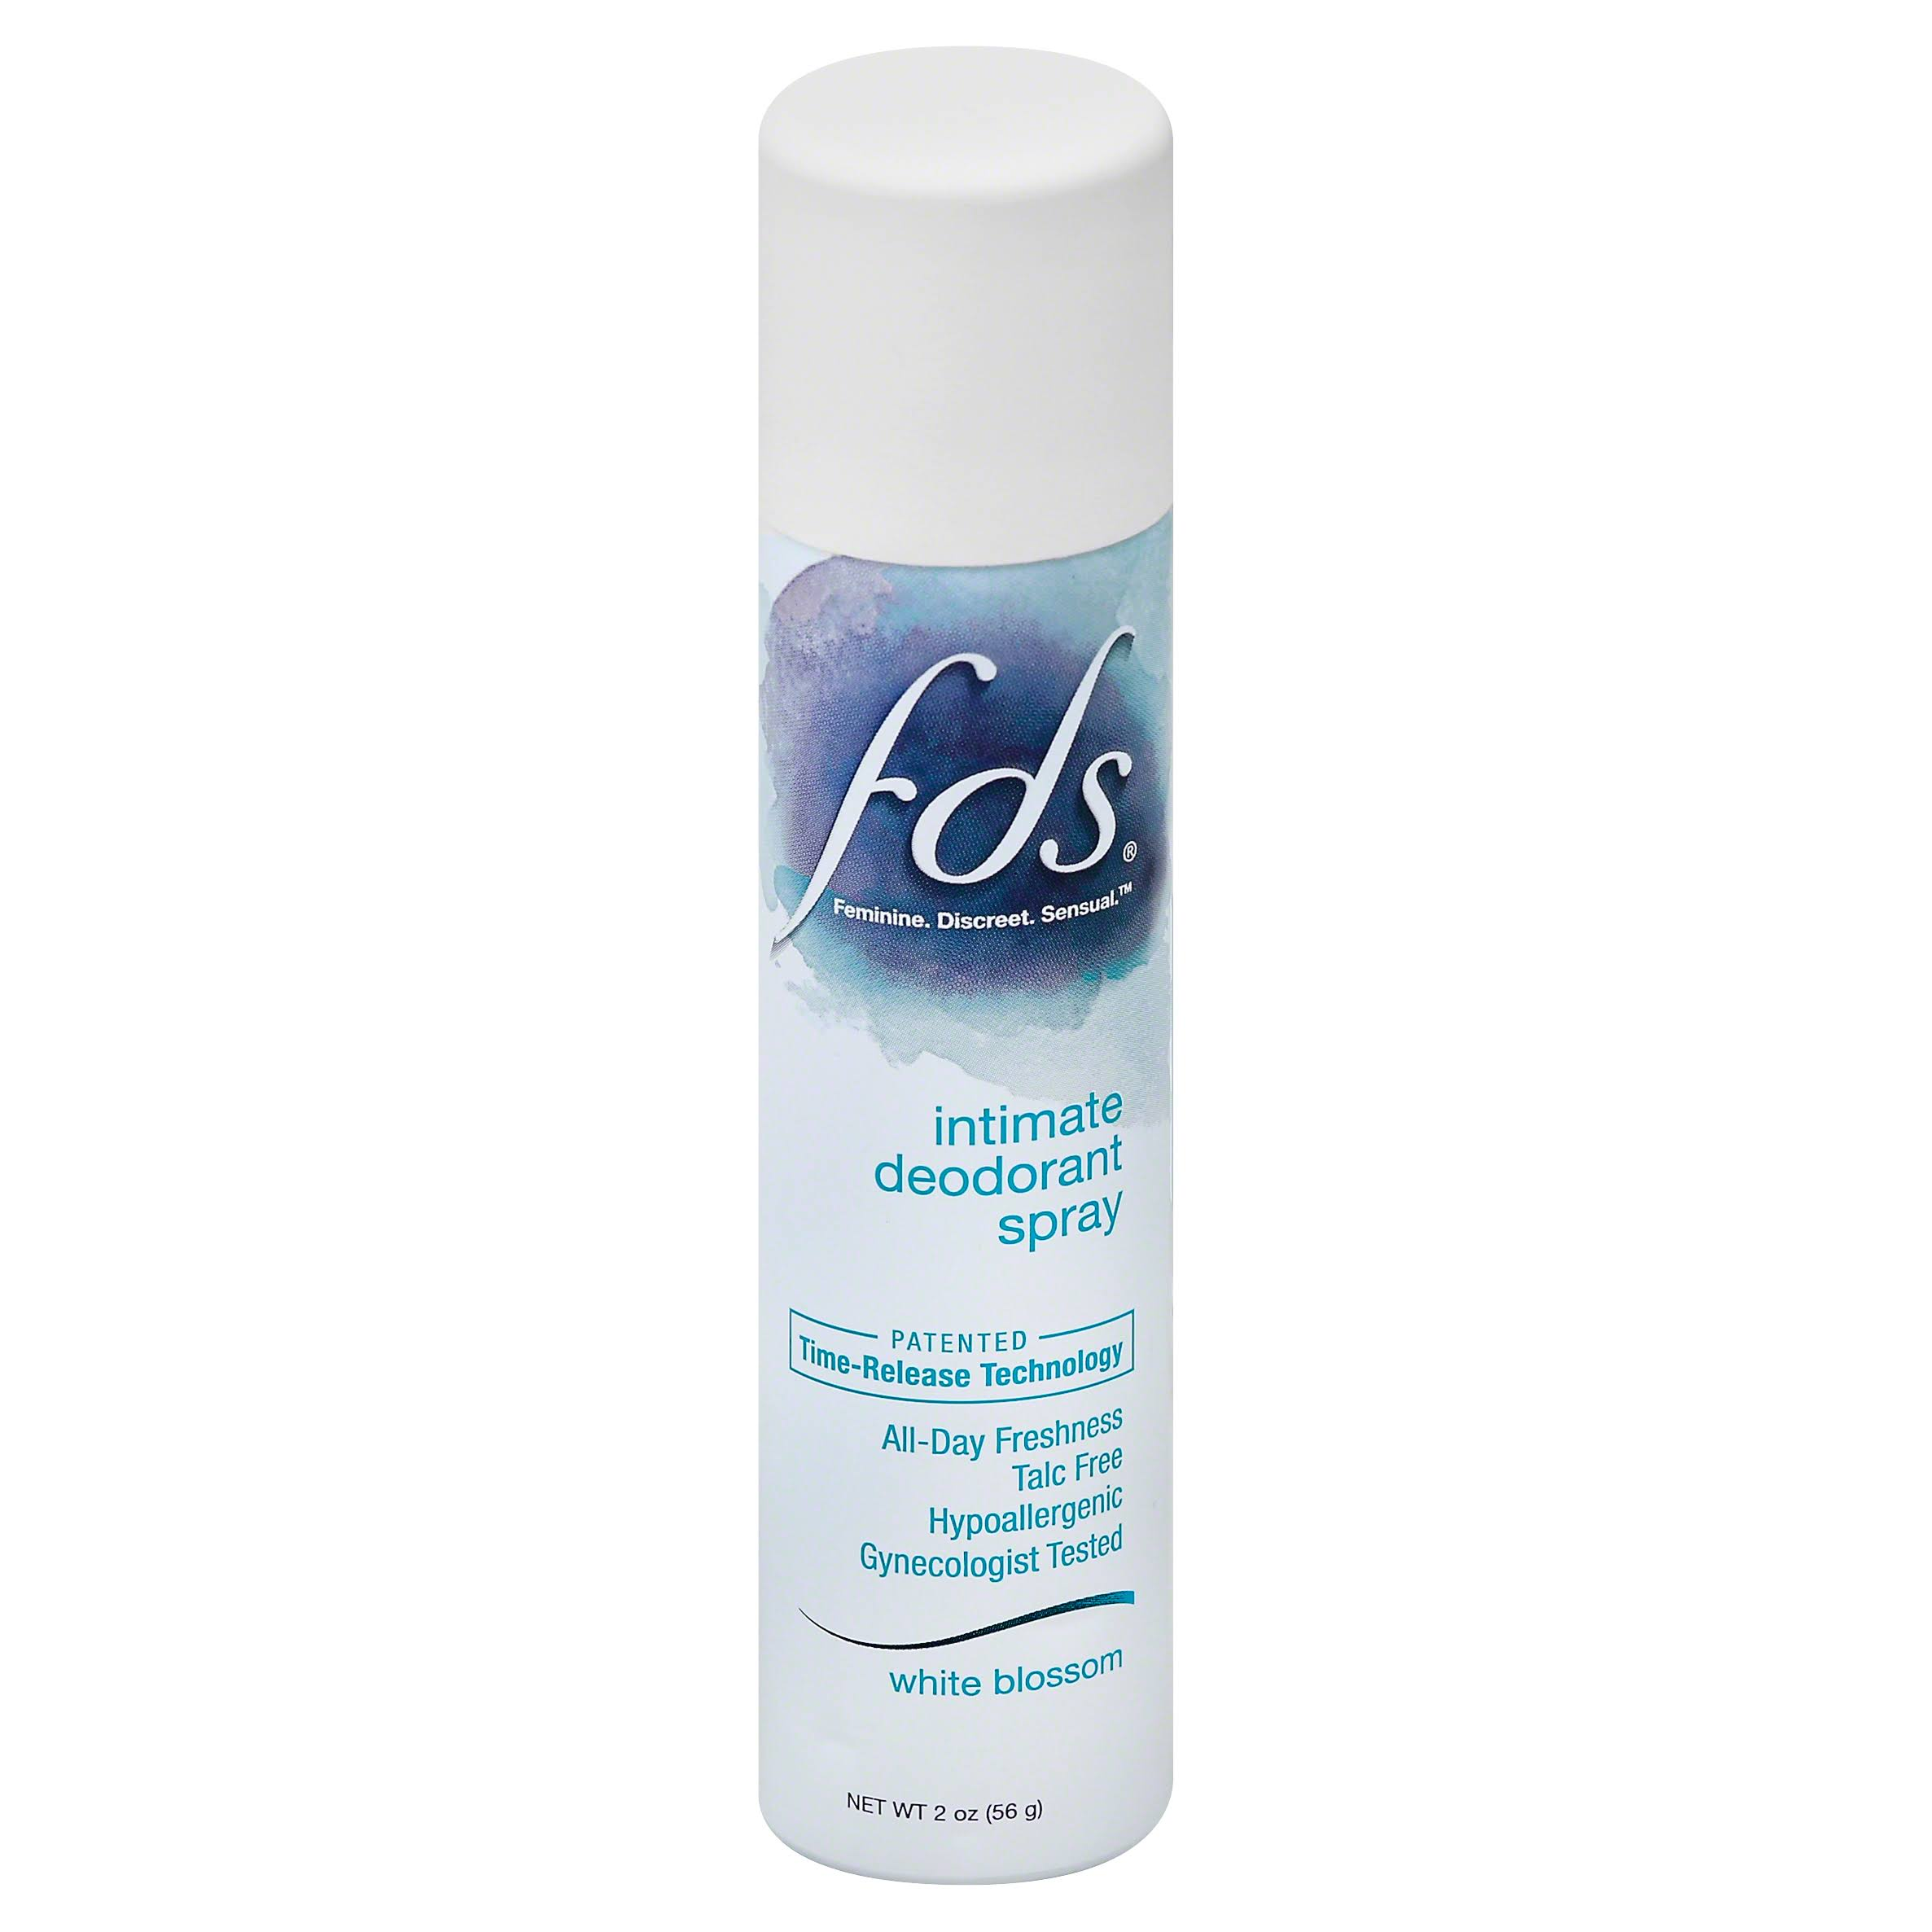 FDS Intimate Deodorant Spray - White Blossom, 2oz